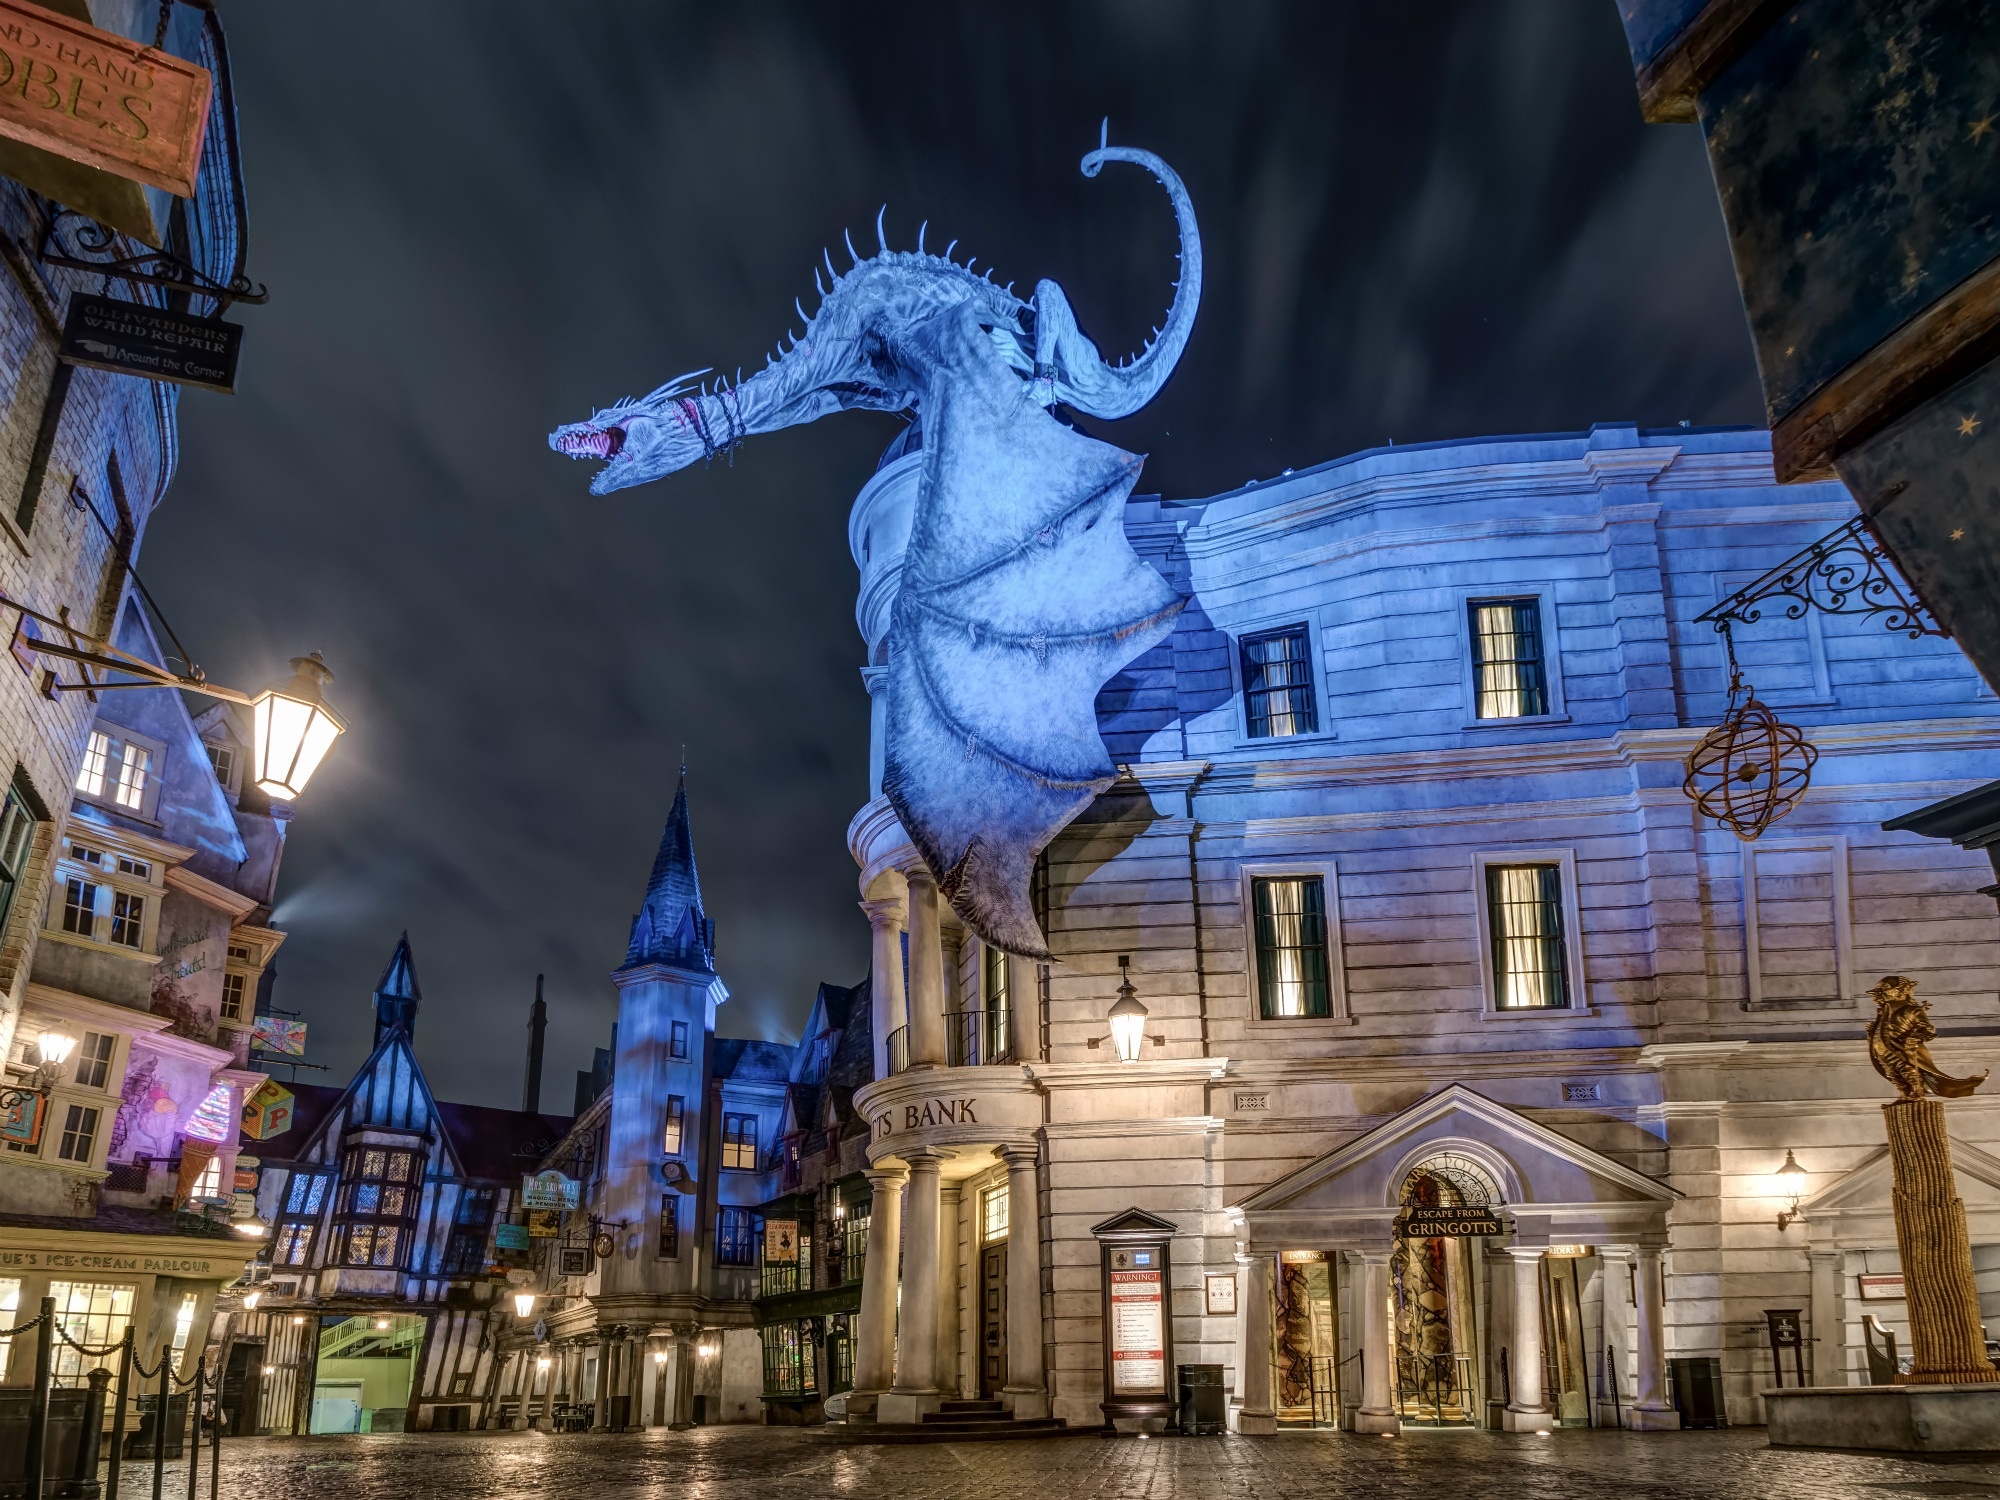 UNIVERSAL ORLANDO RESORT (Florida) - Consisting of two theme parks including the Wizarding World of Harry Potter, one water park, and six hotels, Universal Studios Orlando is one of the most exciting vacation destinations in the world!